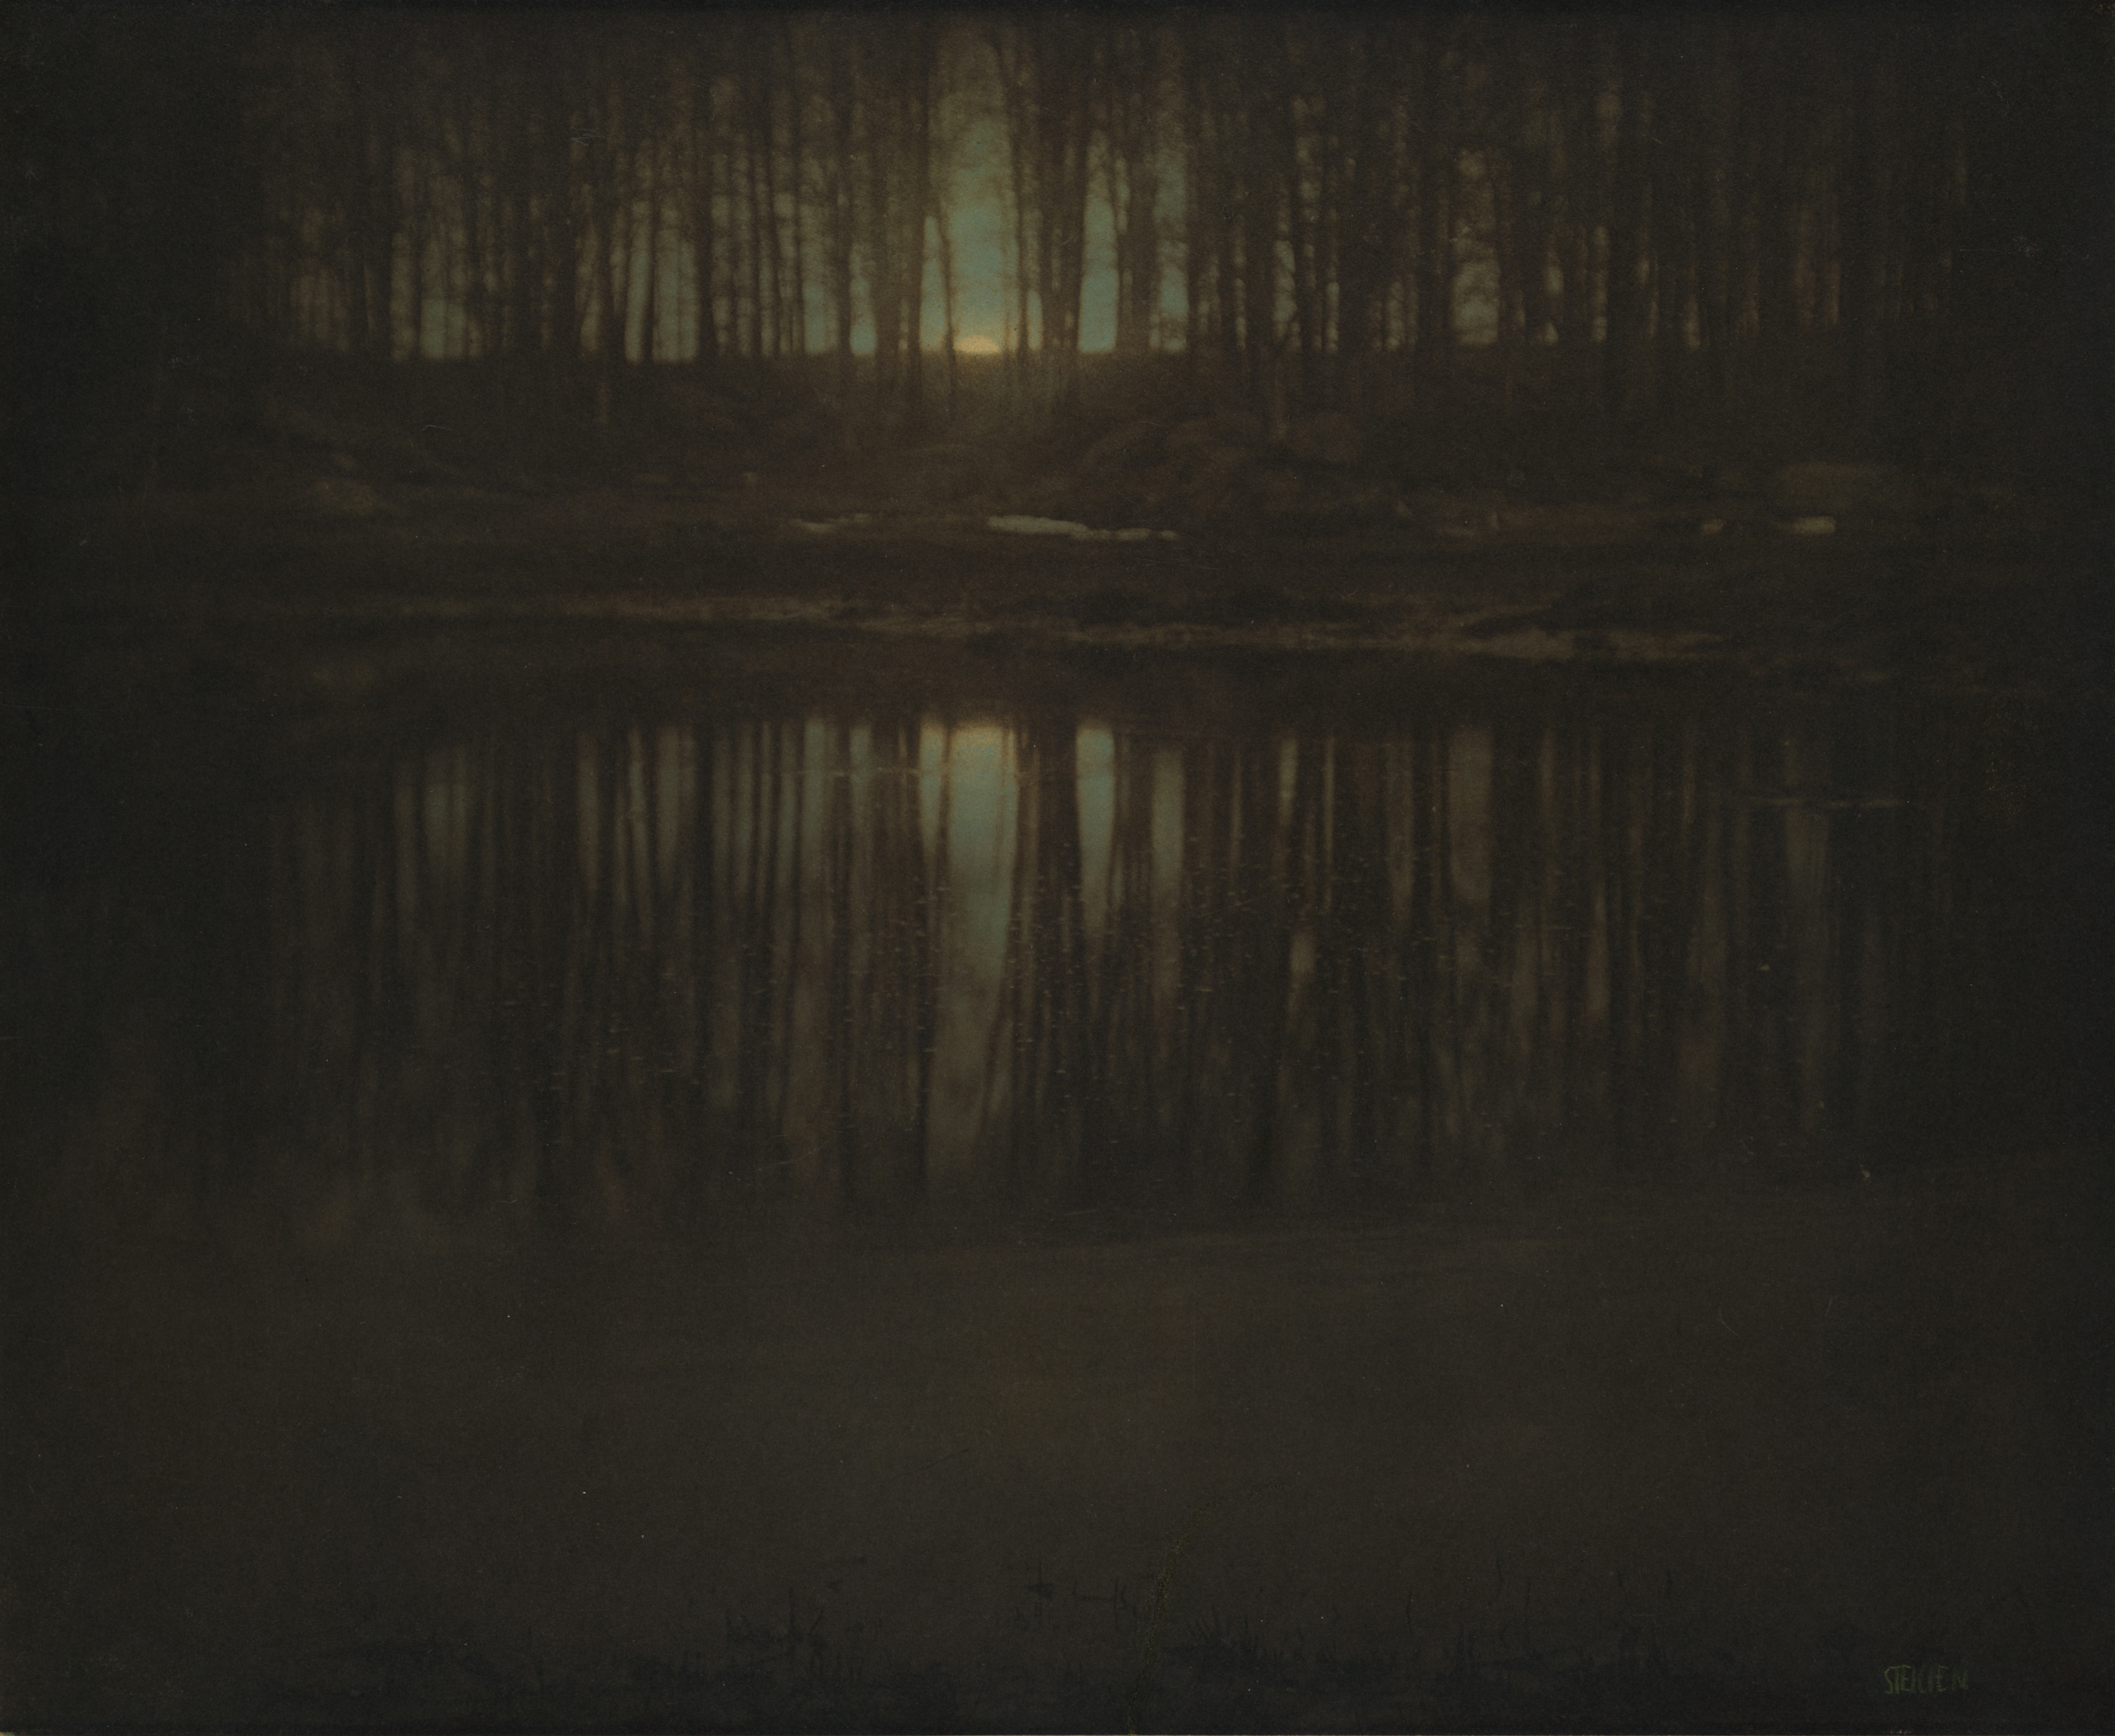 The Pond -- Moonrise, 1904 (Edward Steichen)